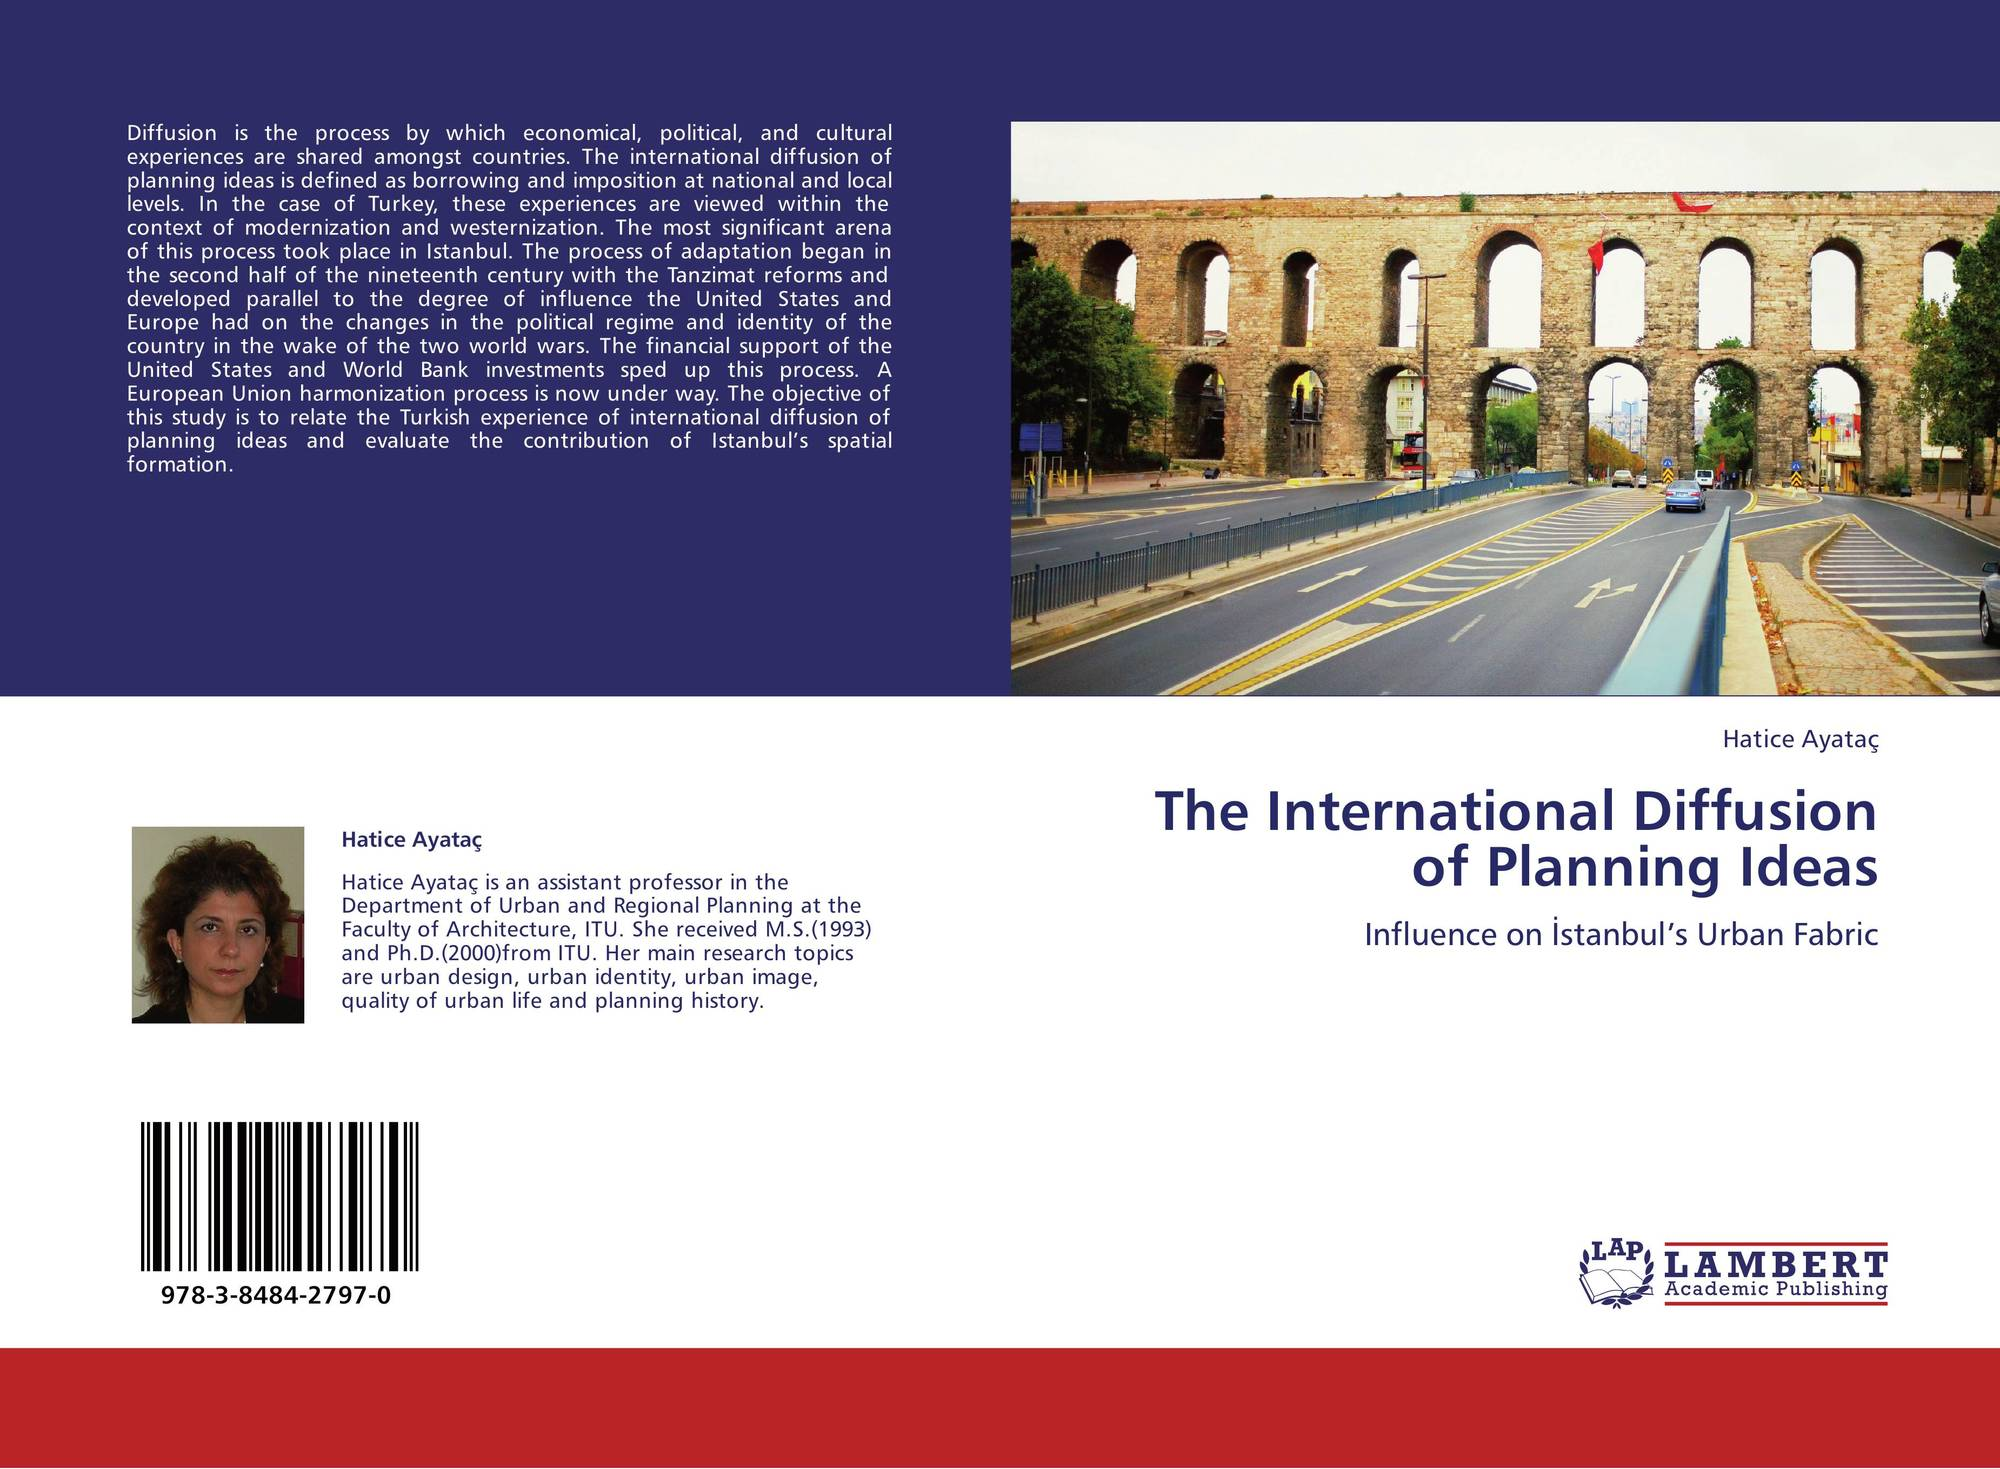 The International Diffusion of Planning Ideas, 978-3-8484-2797-0